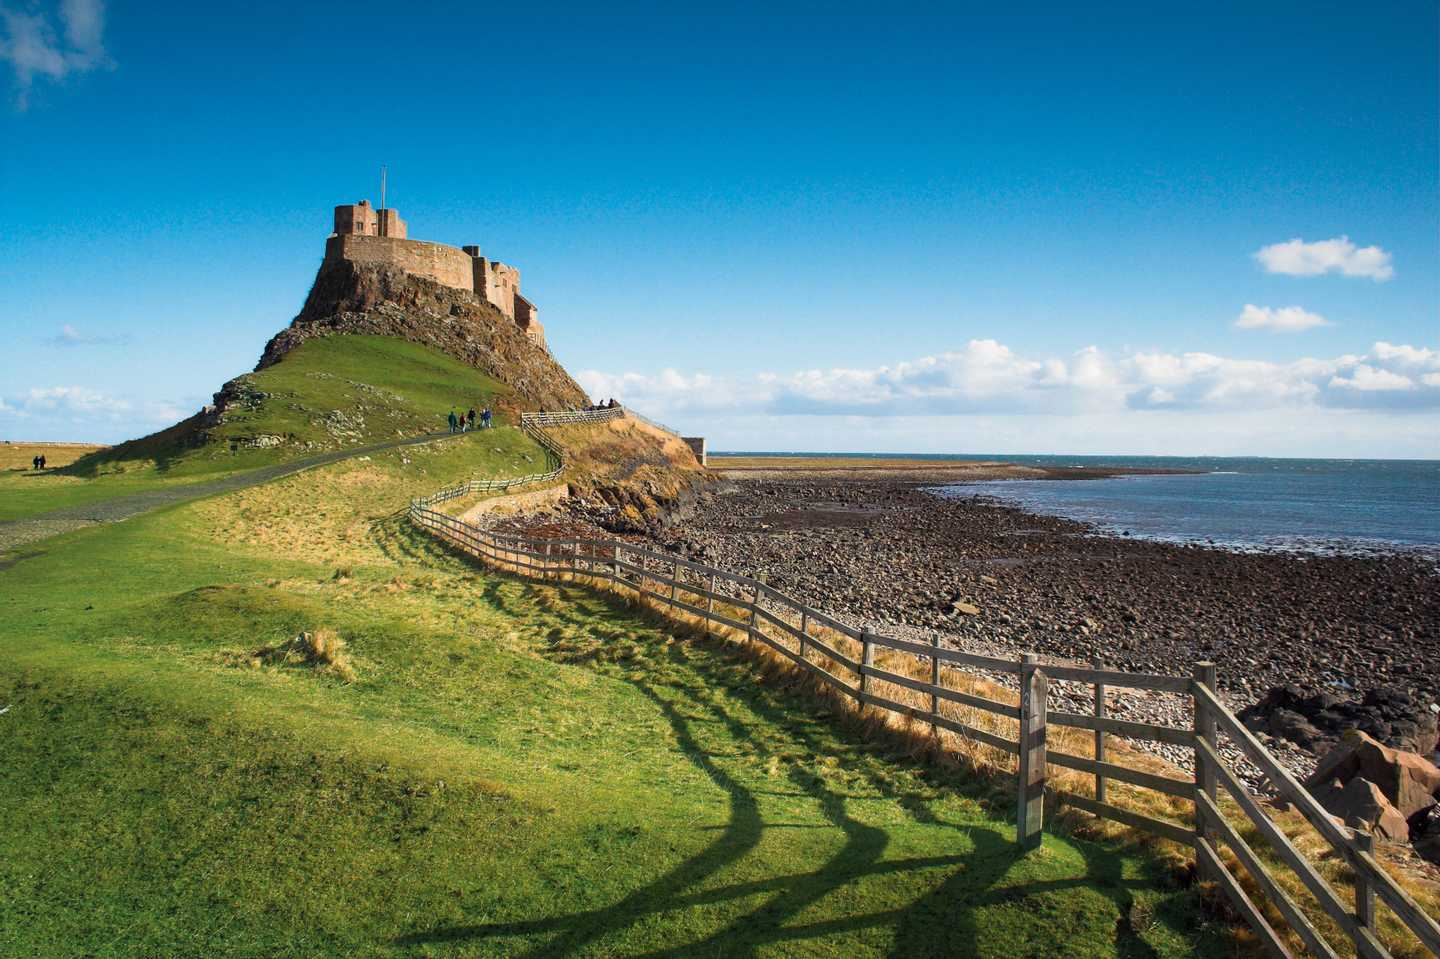 Lindisfarne Castle in the distance